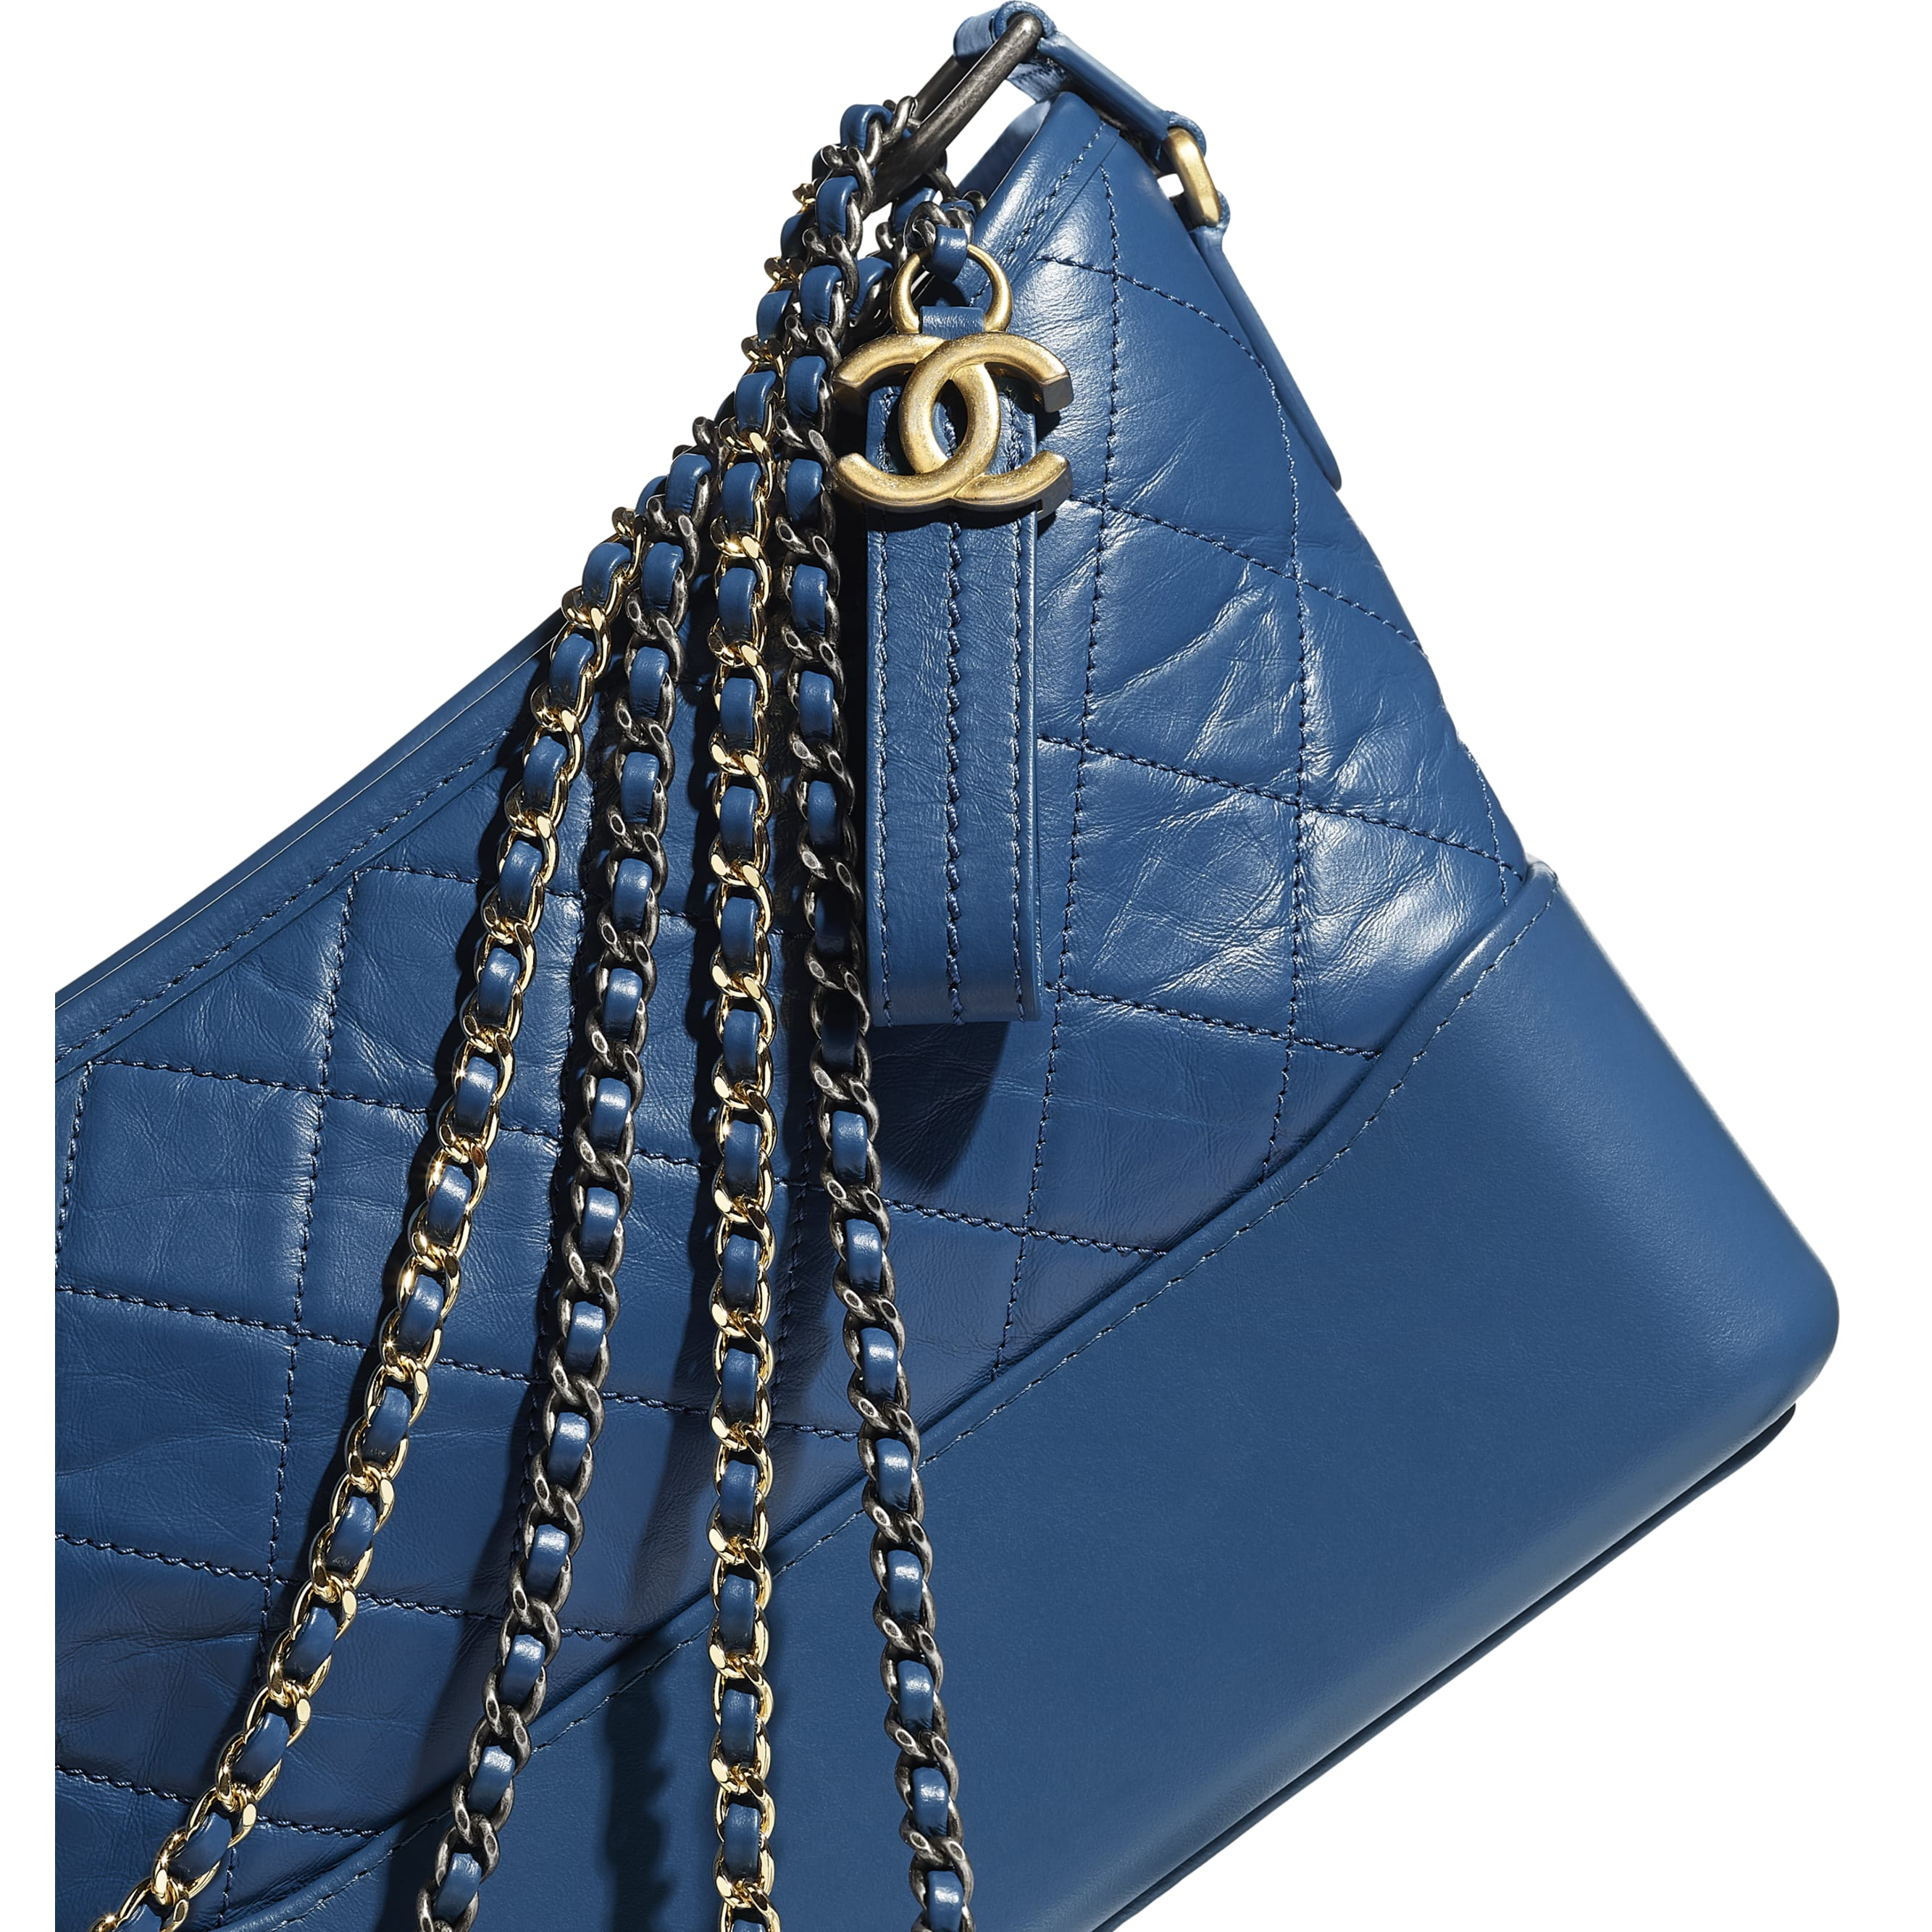 CHANEL'S GABRIELLE Hobo Handbag - Dark Blue - Aged Calfskin, Smooth Calfskin, Silver-Tone & Gold-Tone Metal - Extra view - see standard sized version